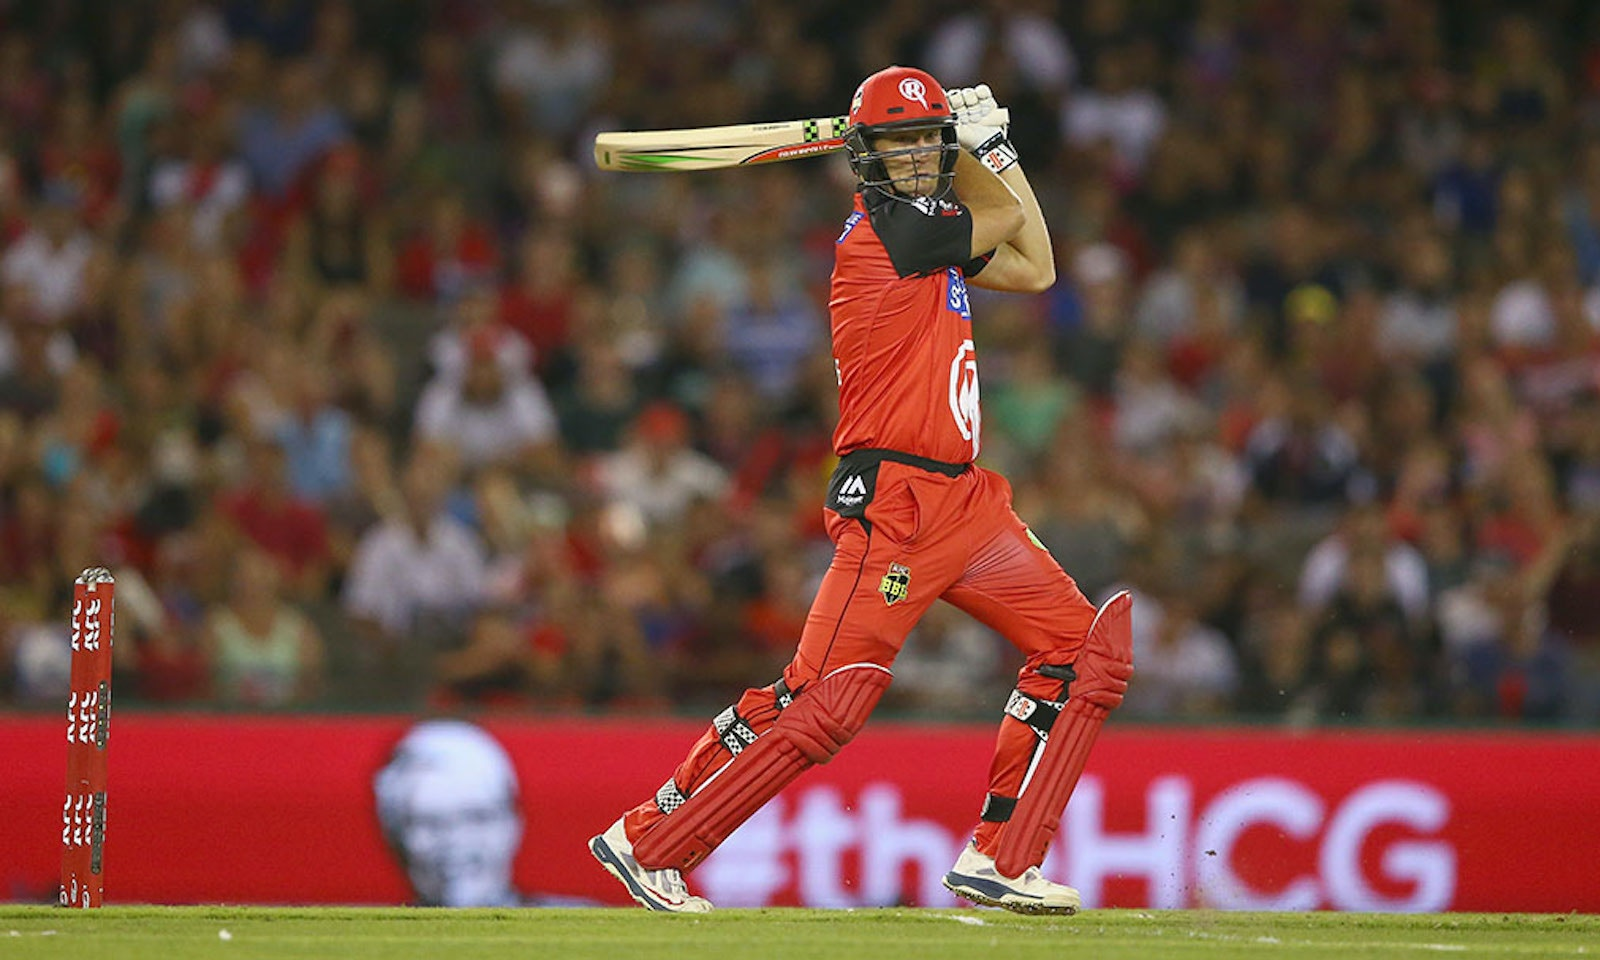 Experience The Big Bash With The Melbourne Renegades in 2018/19